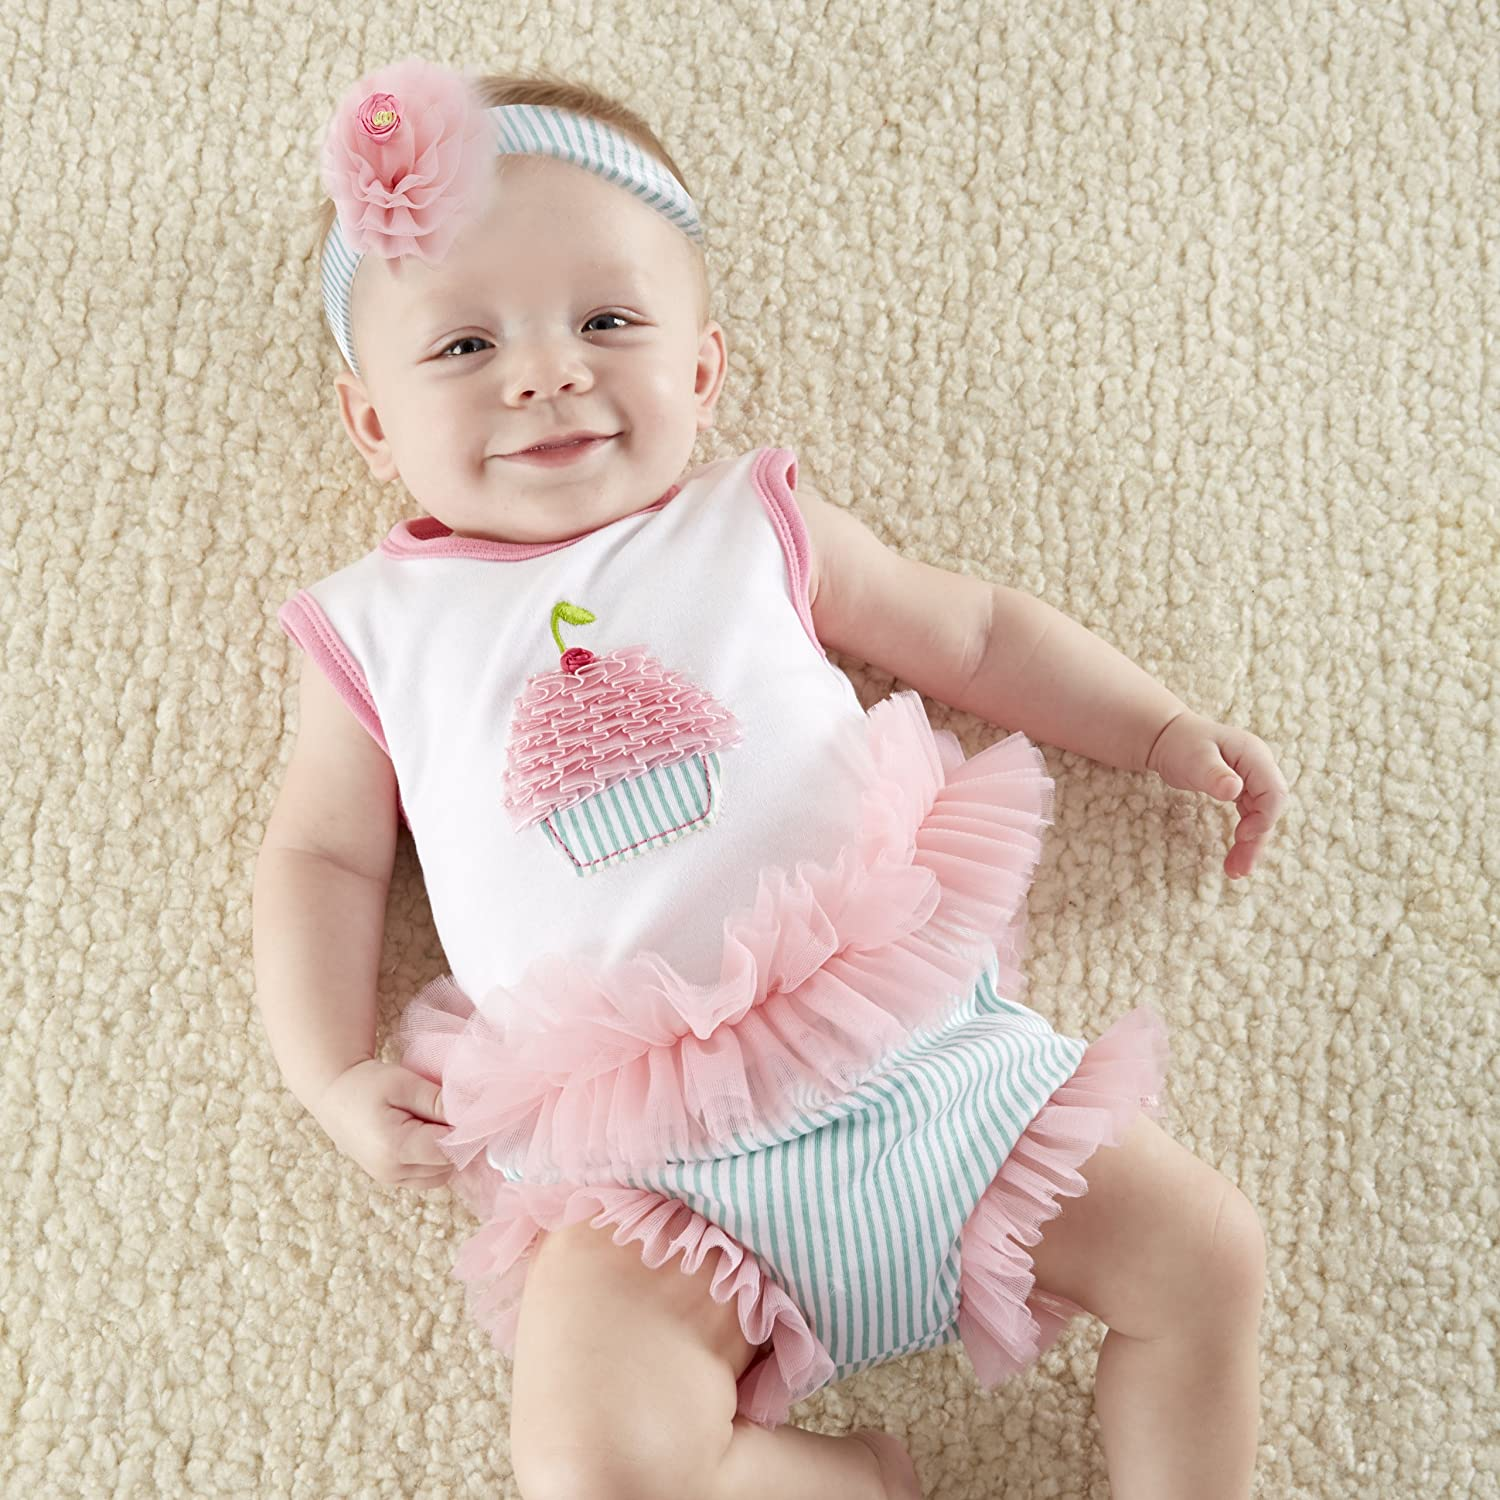 Baby Aspen, Baby Cakes 2-Piece Cupcake Outfit, 0-6 Months White, sleeveless tunic with pink-and-white trim at the neck and shoulders Tunic and printed bloomer are cotton interlock with tulle and ruffled chiffon detail Presentation includes bakery store-front display gift box